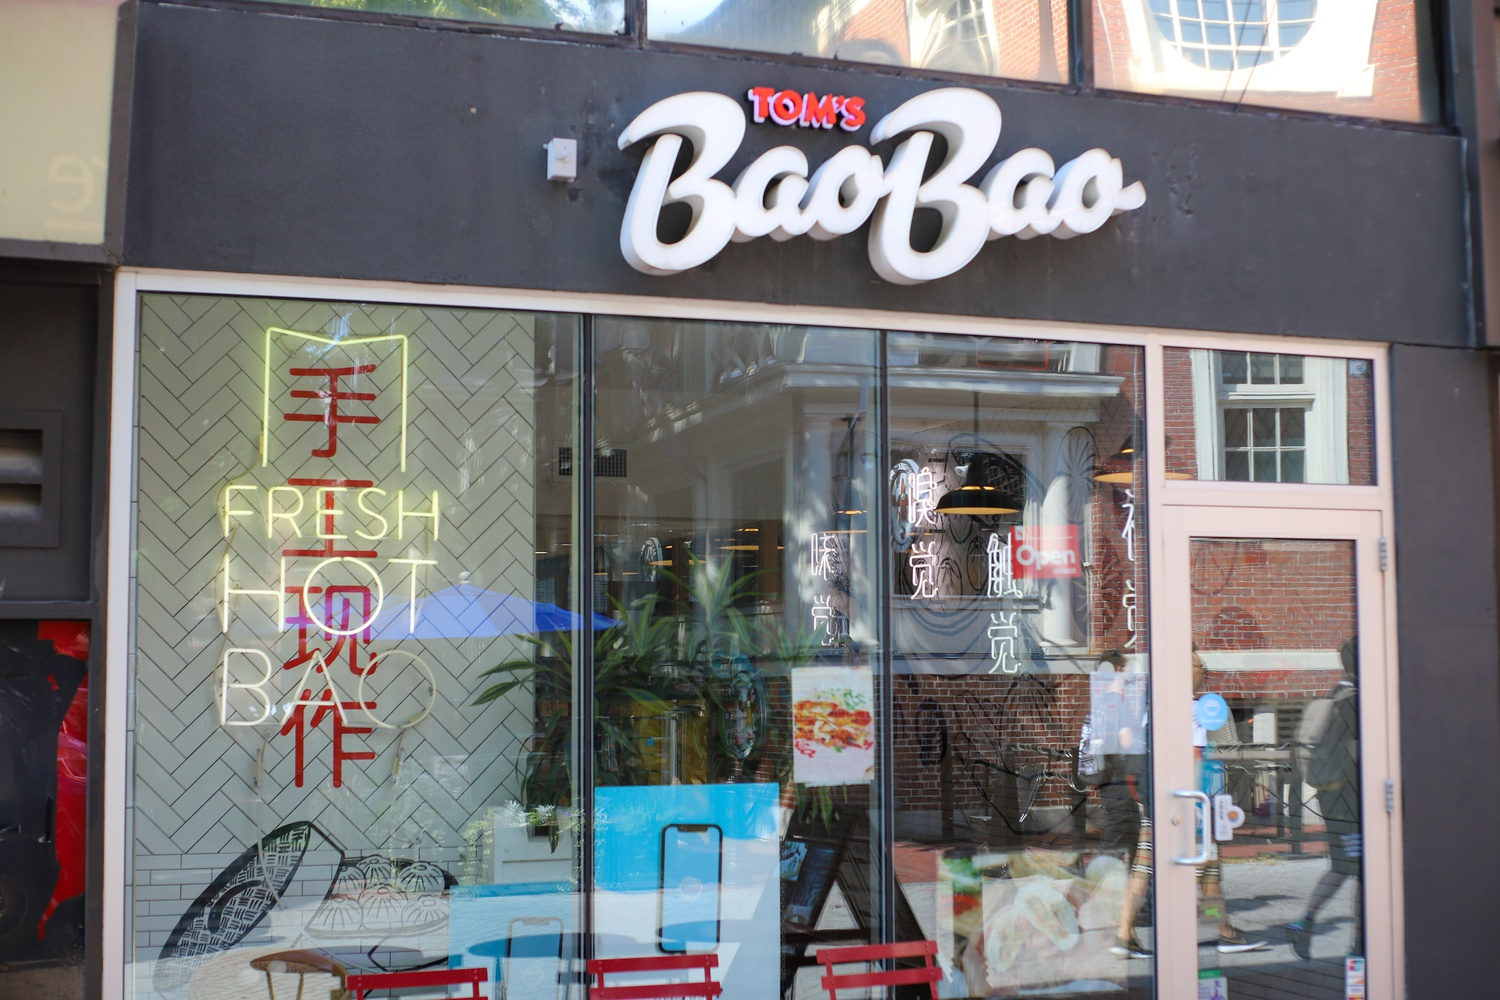 Tom's BaoBao was located on Winthrop Street off Harvard Square.